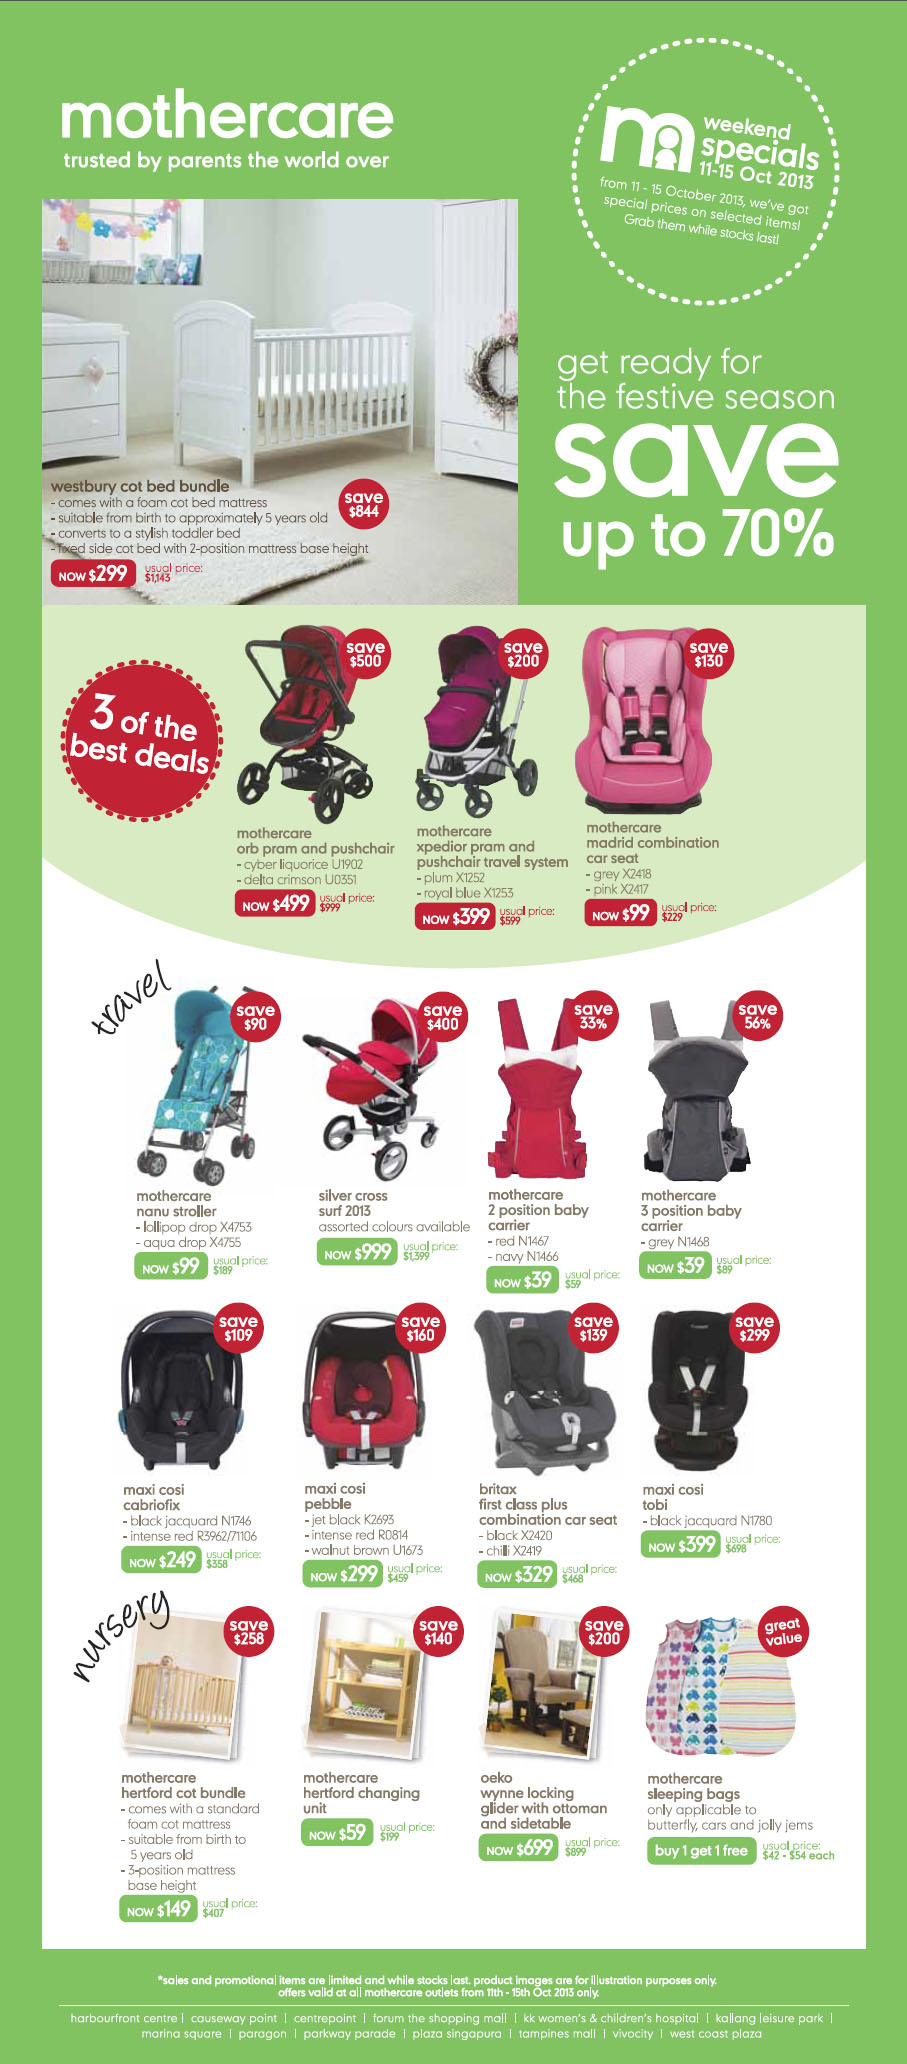 mothercare Weekend Specials 11-15th Oct 2013 – Save Up To 70% On Prams & Baby Carriers